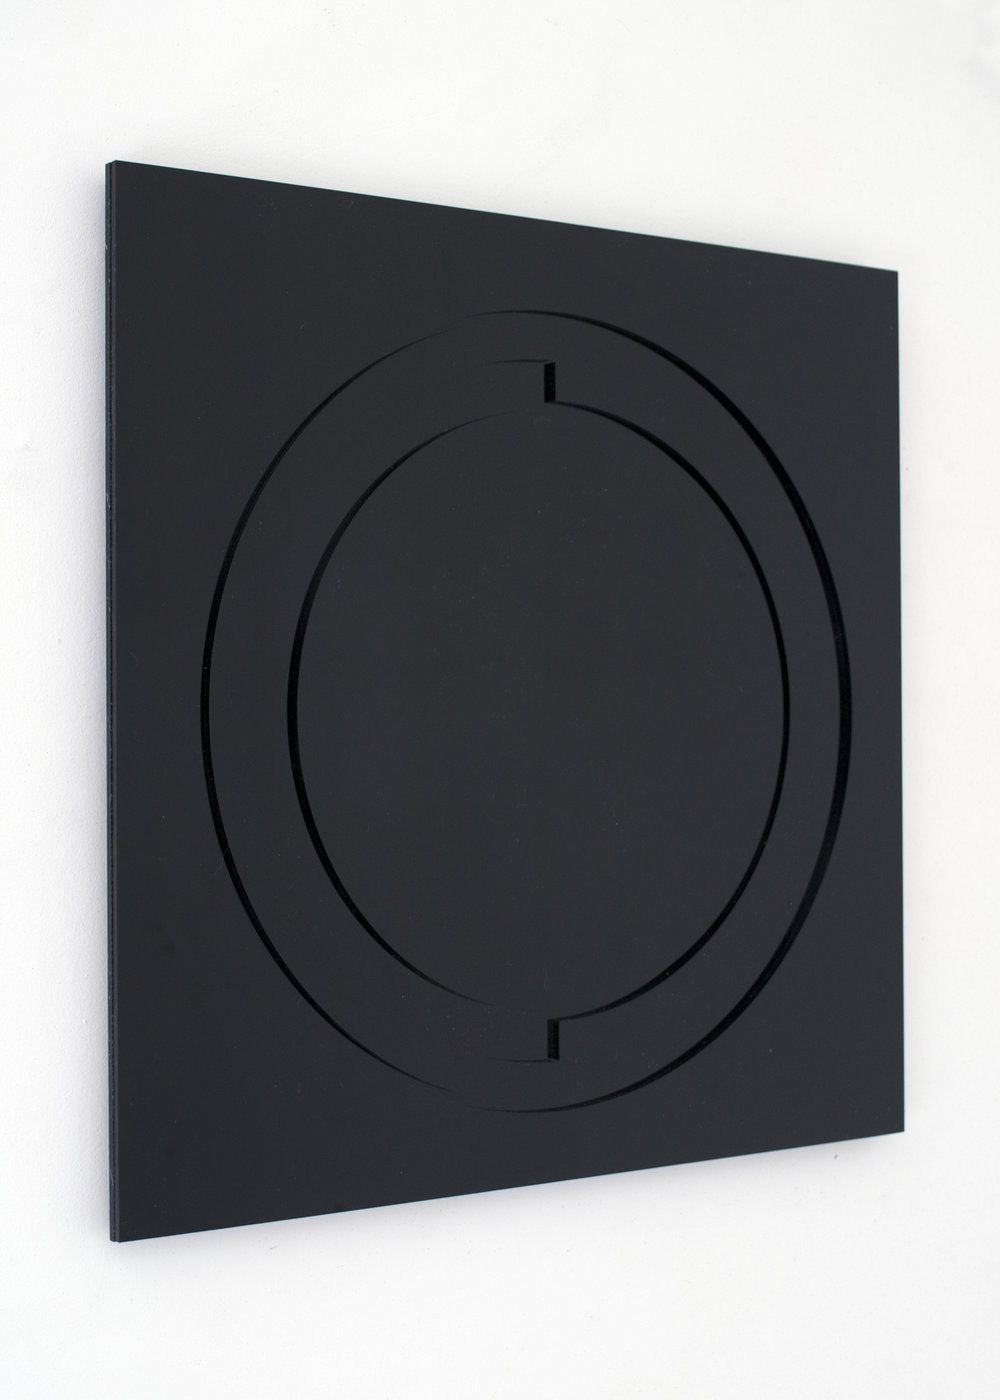 (untitled - inset annular sectors)